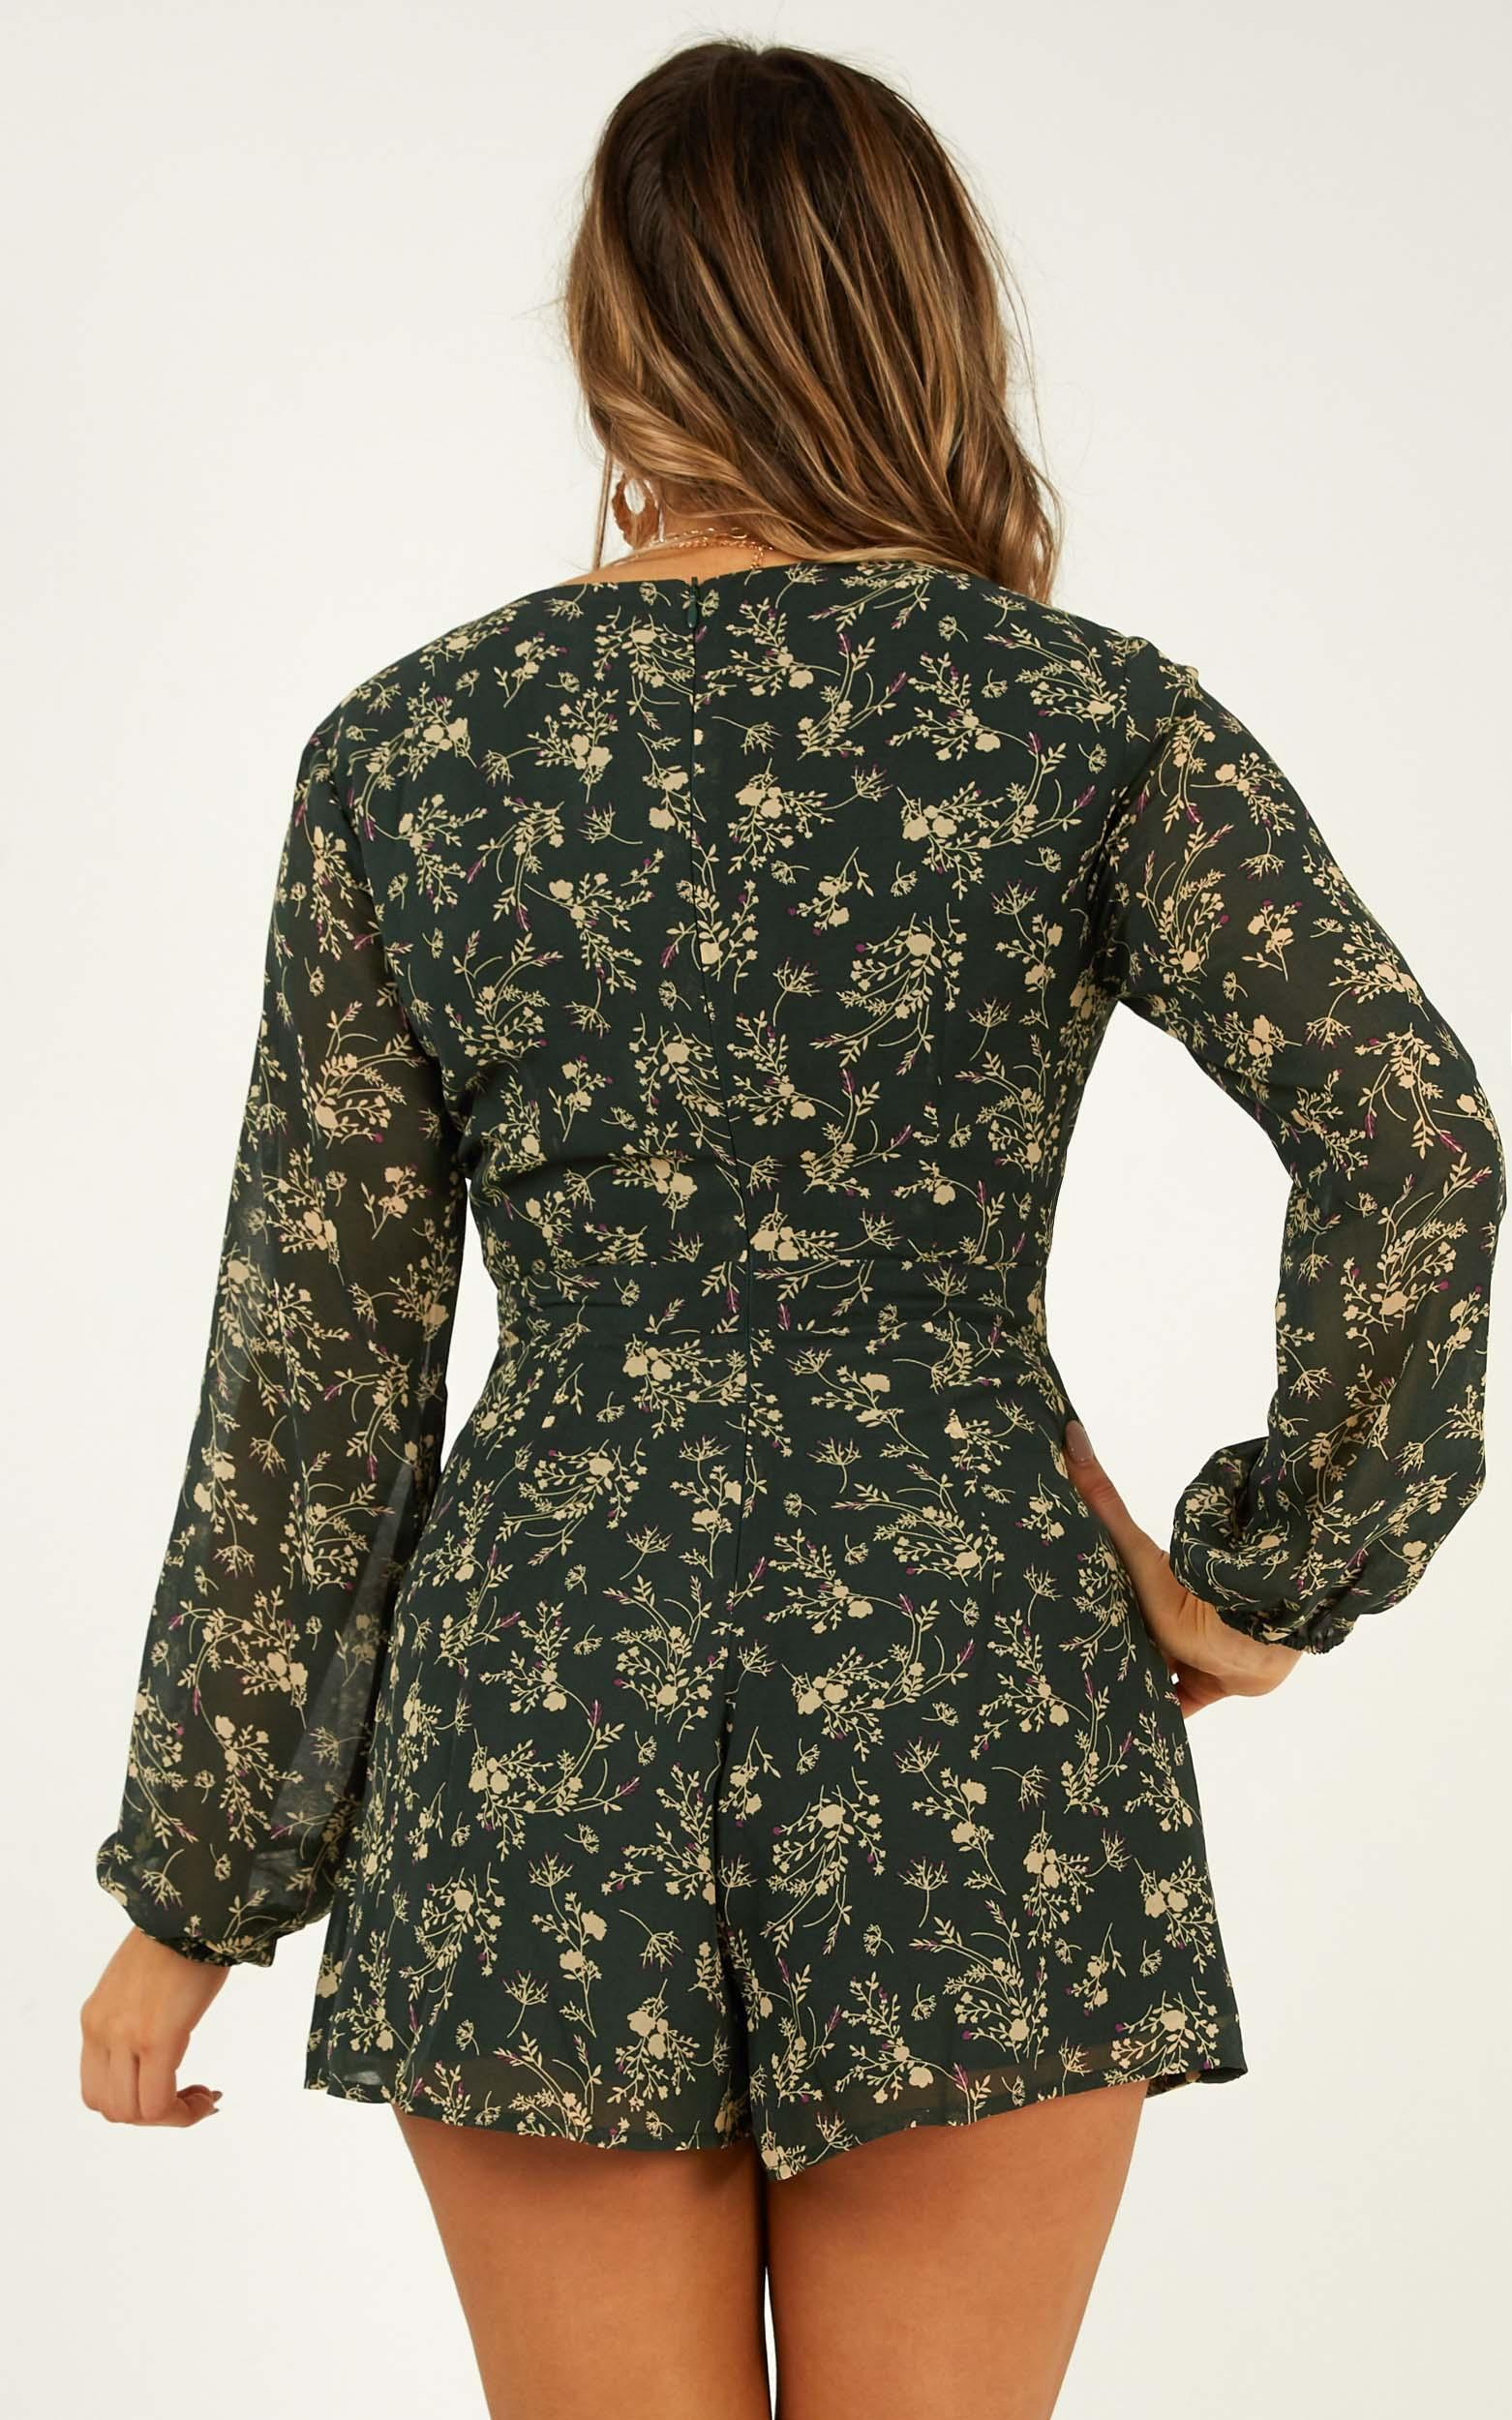 Cute Girl Playsuit in emerald floral - 16 (XXL), Green, hi-res image number null